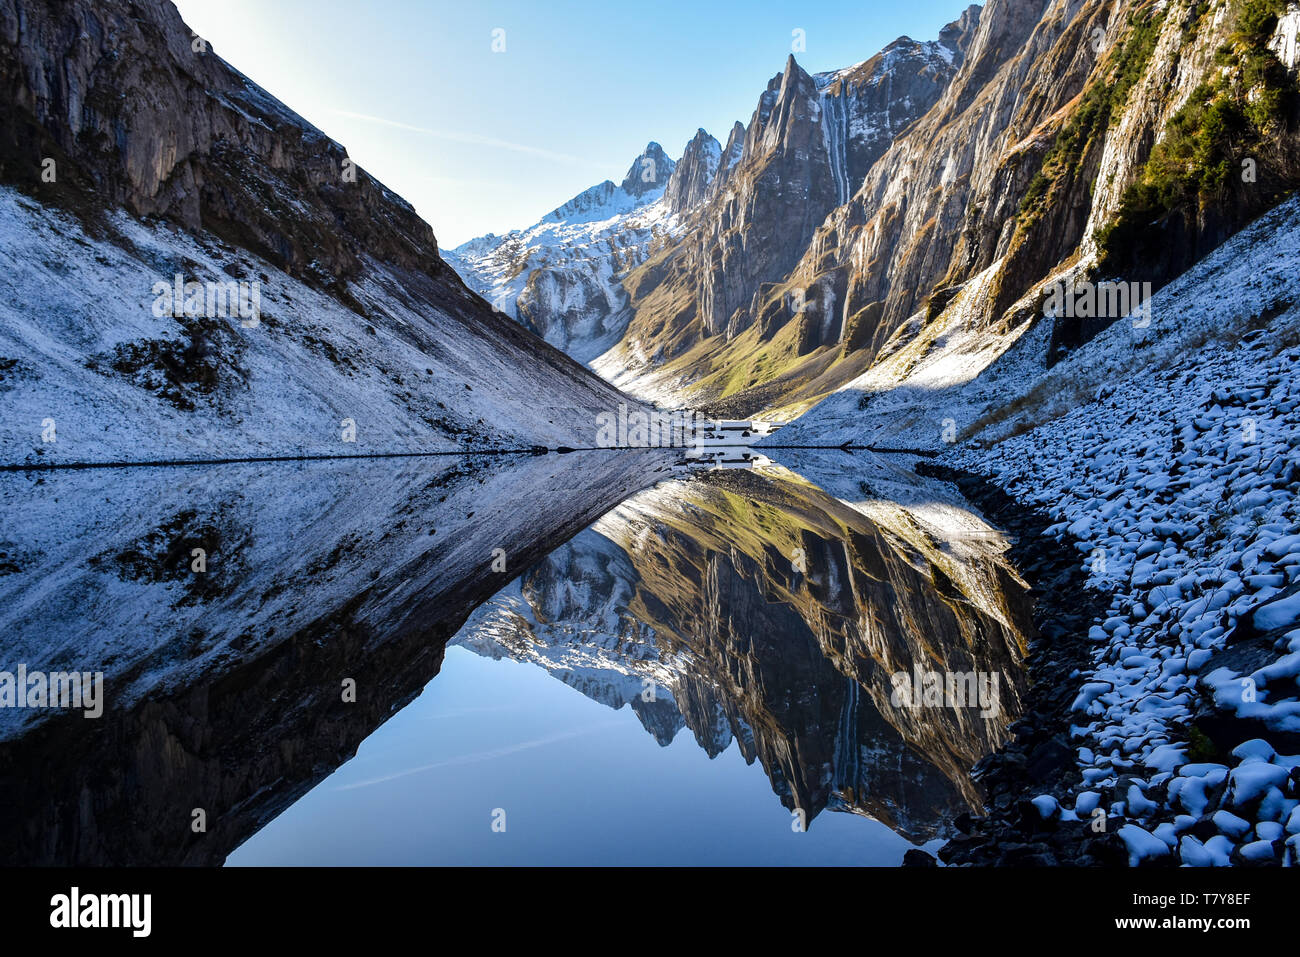 This is the Fählensee in the Alpstein near Appenzell (Switzerland) with very clear water. Sometimes the lake is like a mirror. Stock Photo